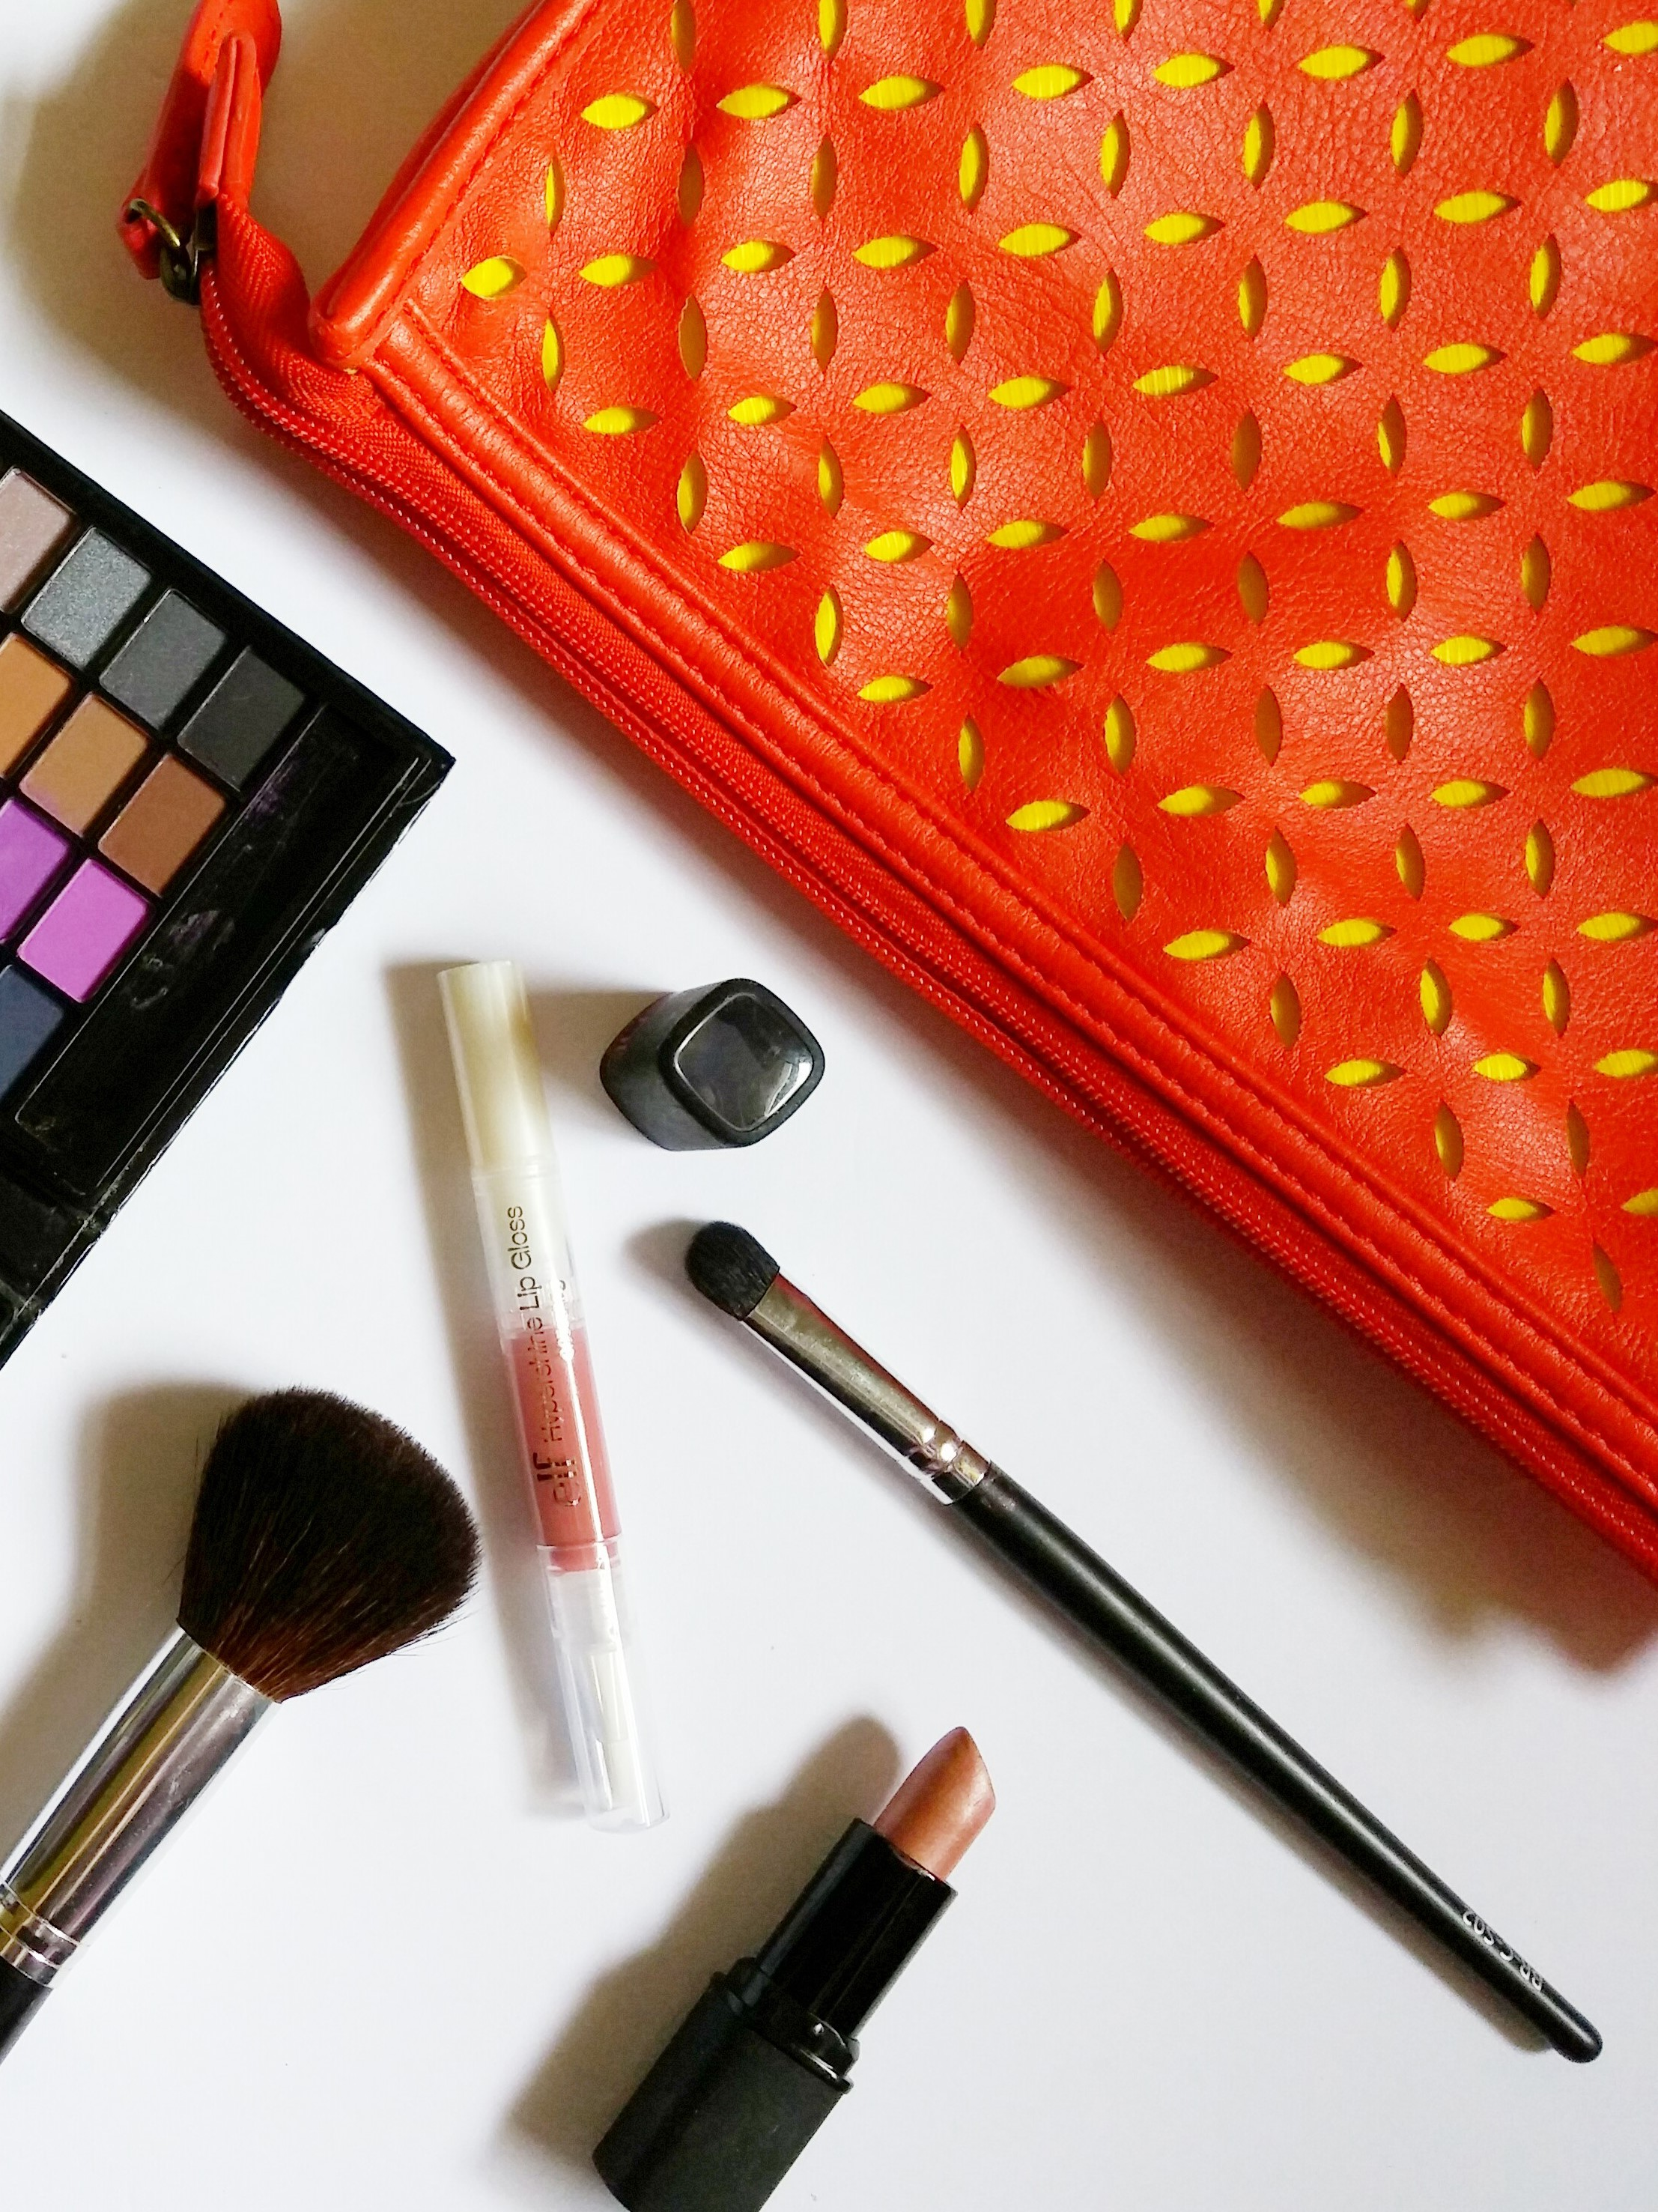 Free And Low Cost Makeup Samples From